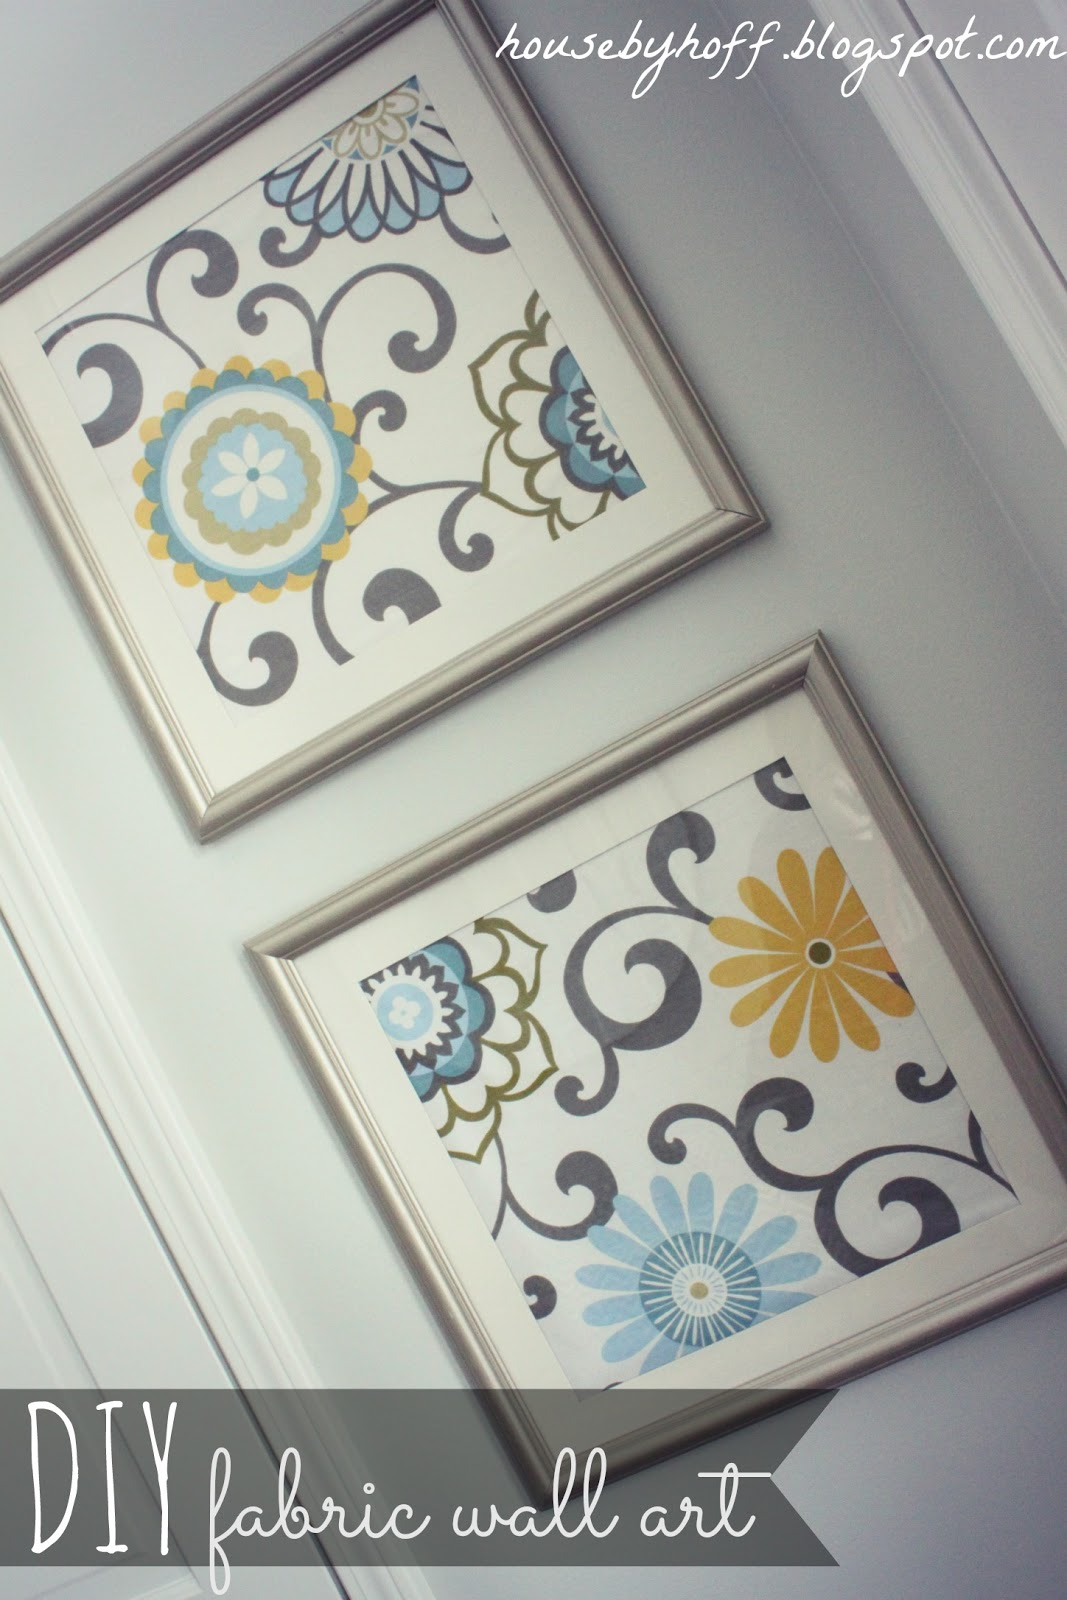 Diy Wall Art Fabric : Diy fabric art house by hoff